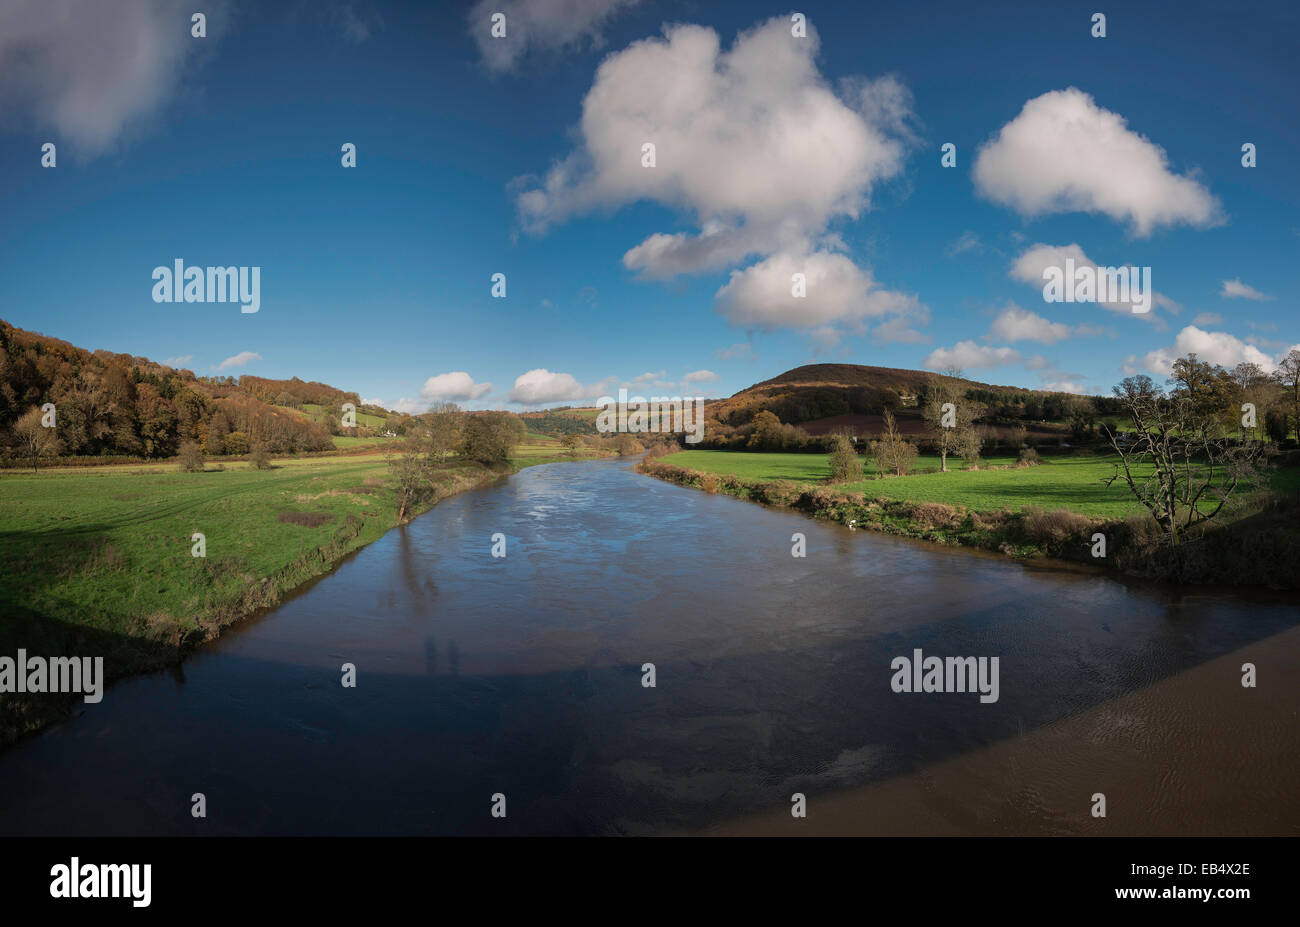 River Wye and Wye Valley taken from Bigsweir Bridge. THe river here is part of the border between England and Wales. - Stock Image